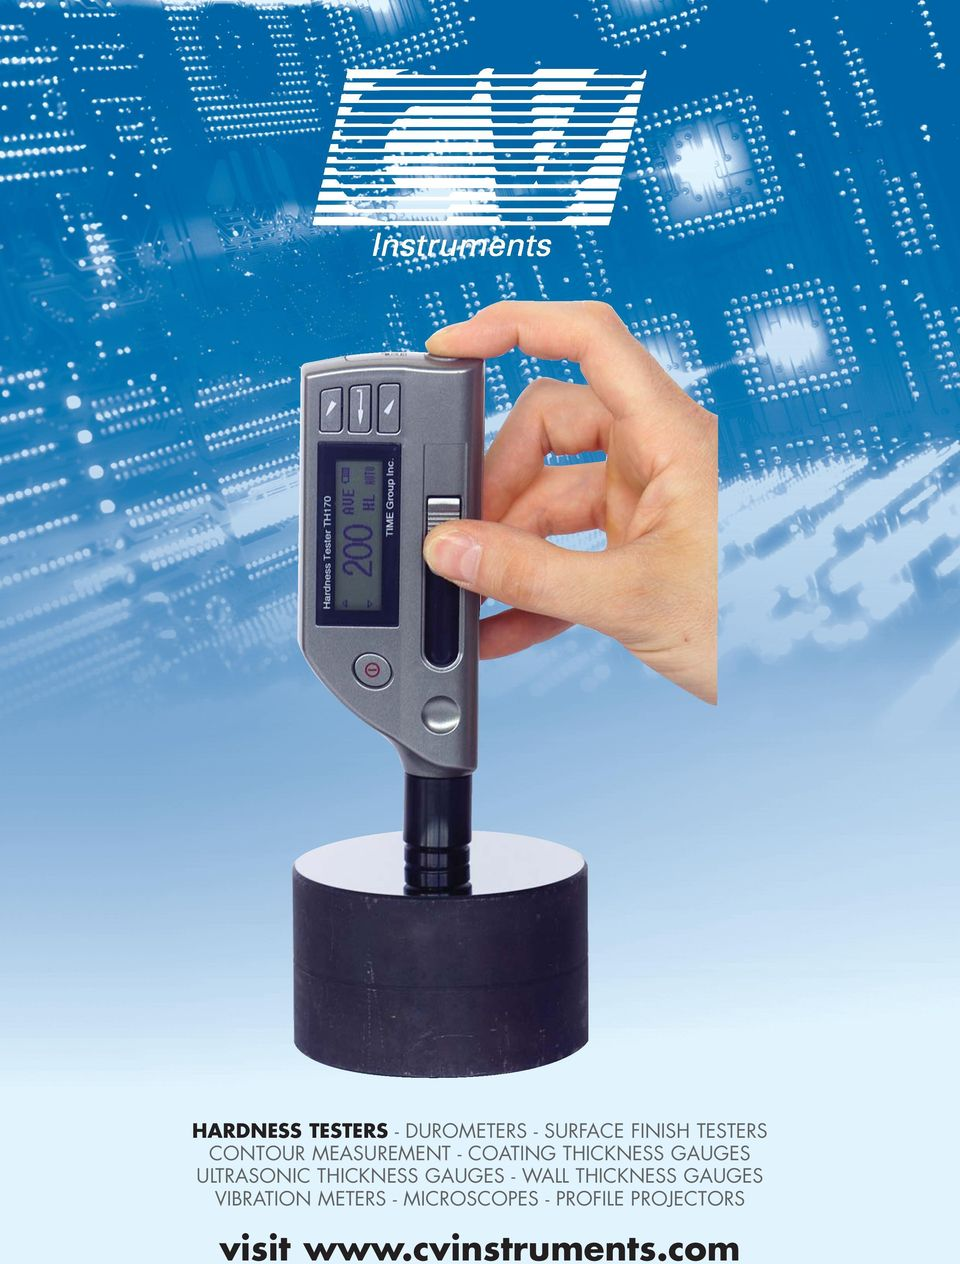 THICKNESS GAUGES - WALL THICKNESS GAUGES VIBRATION METERS